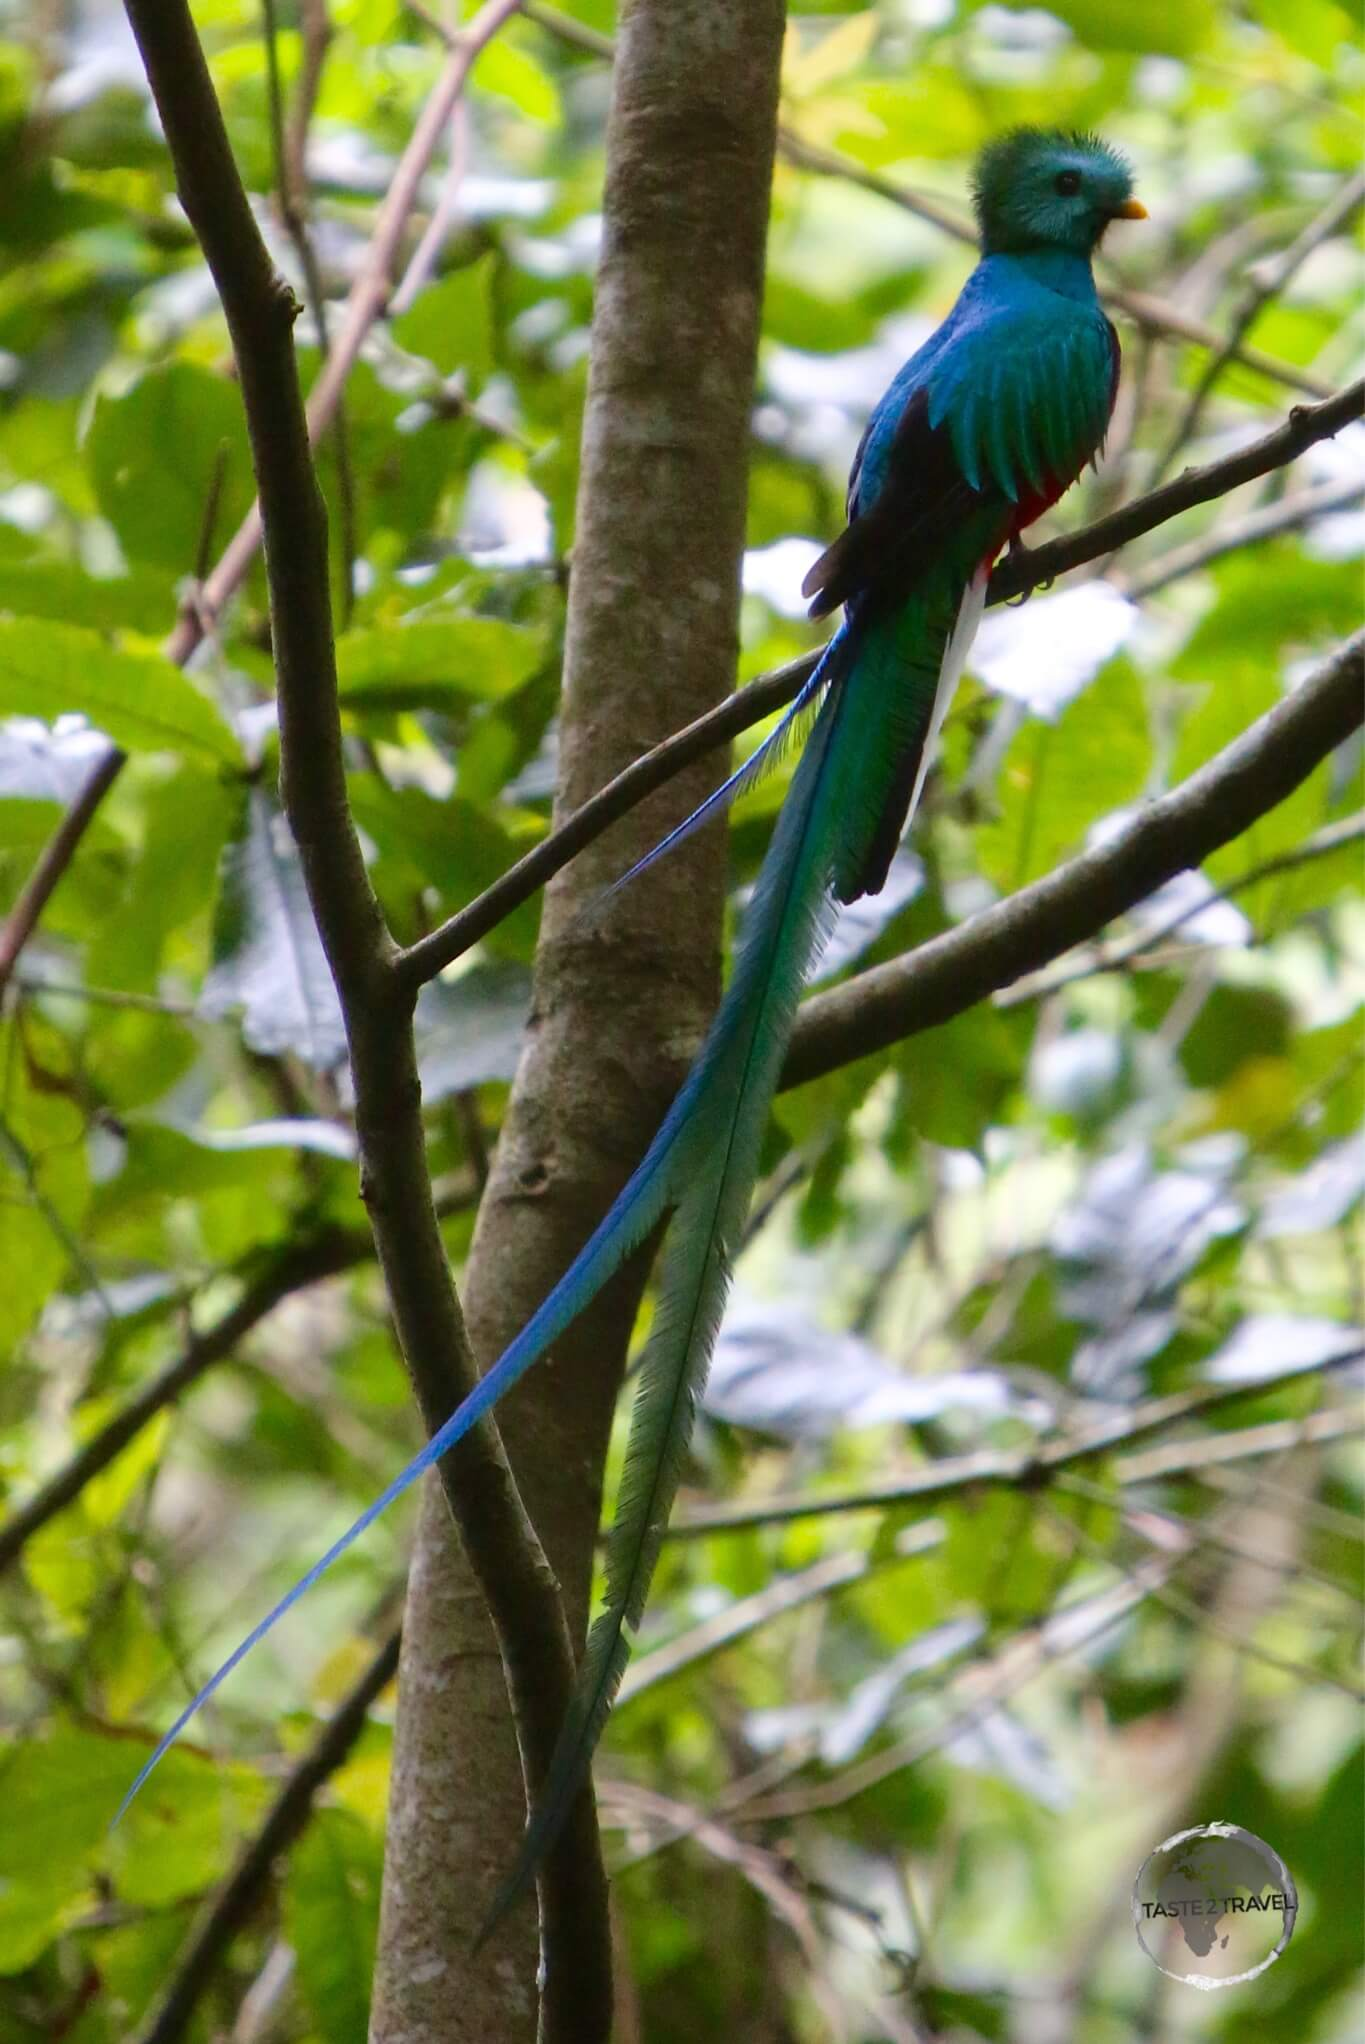 The male Quetzal.